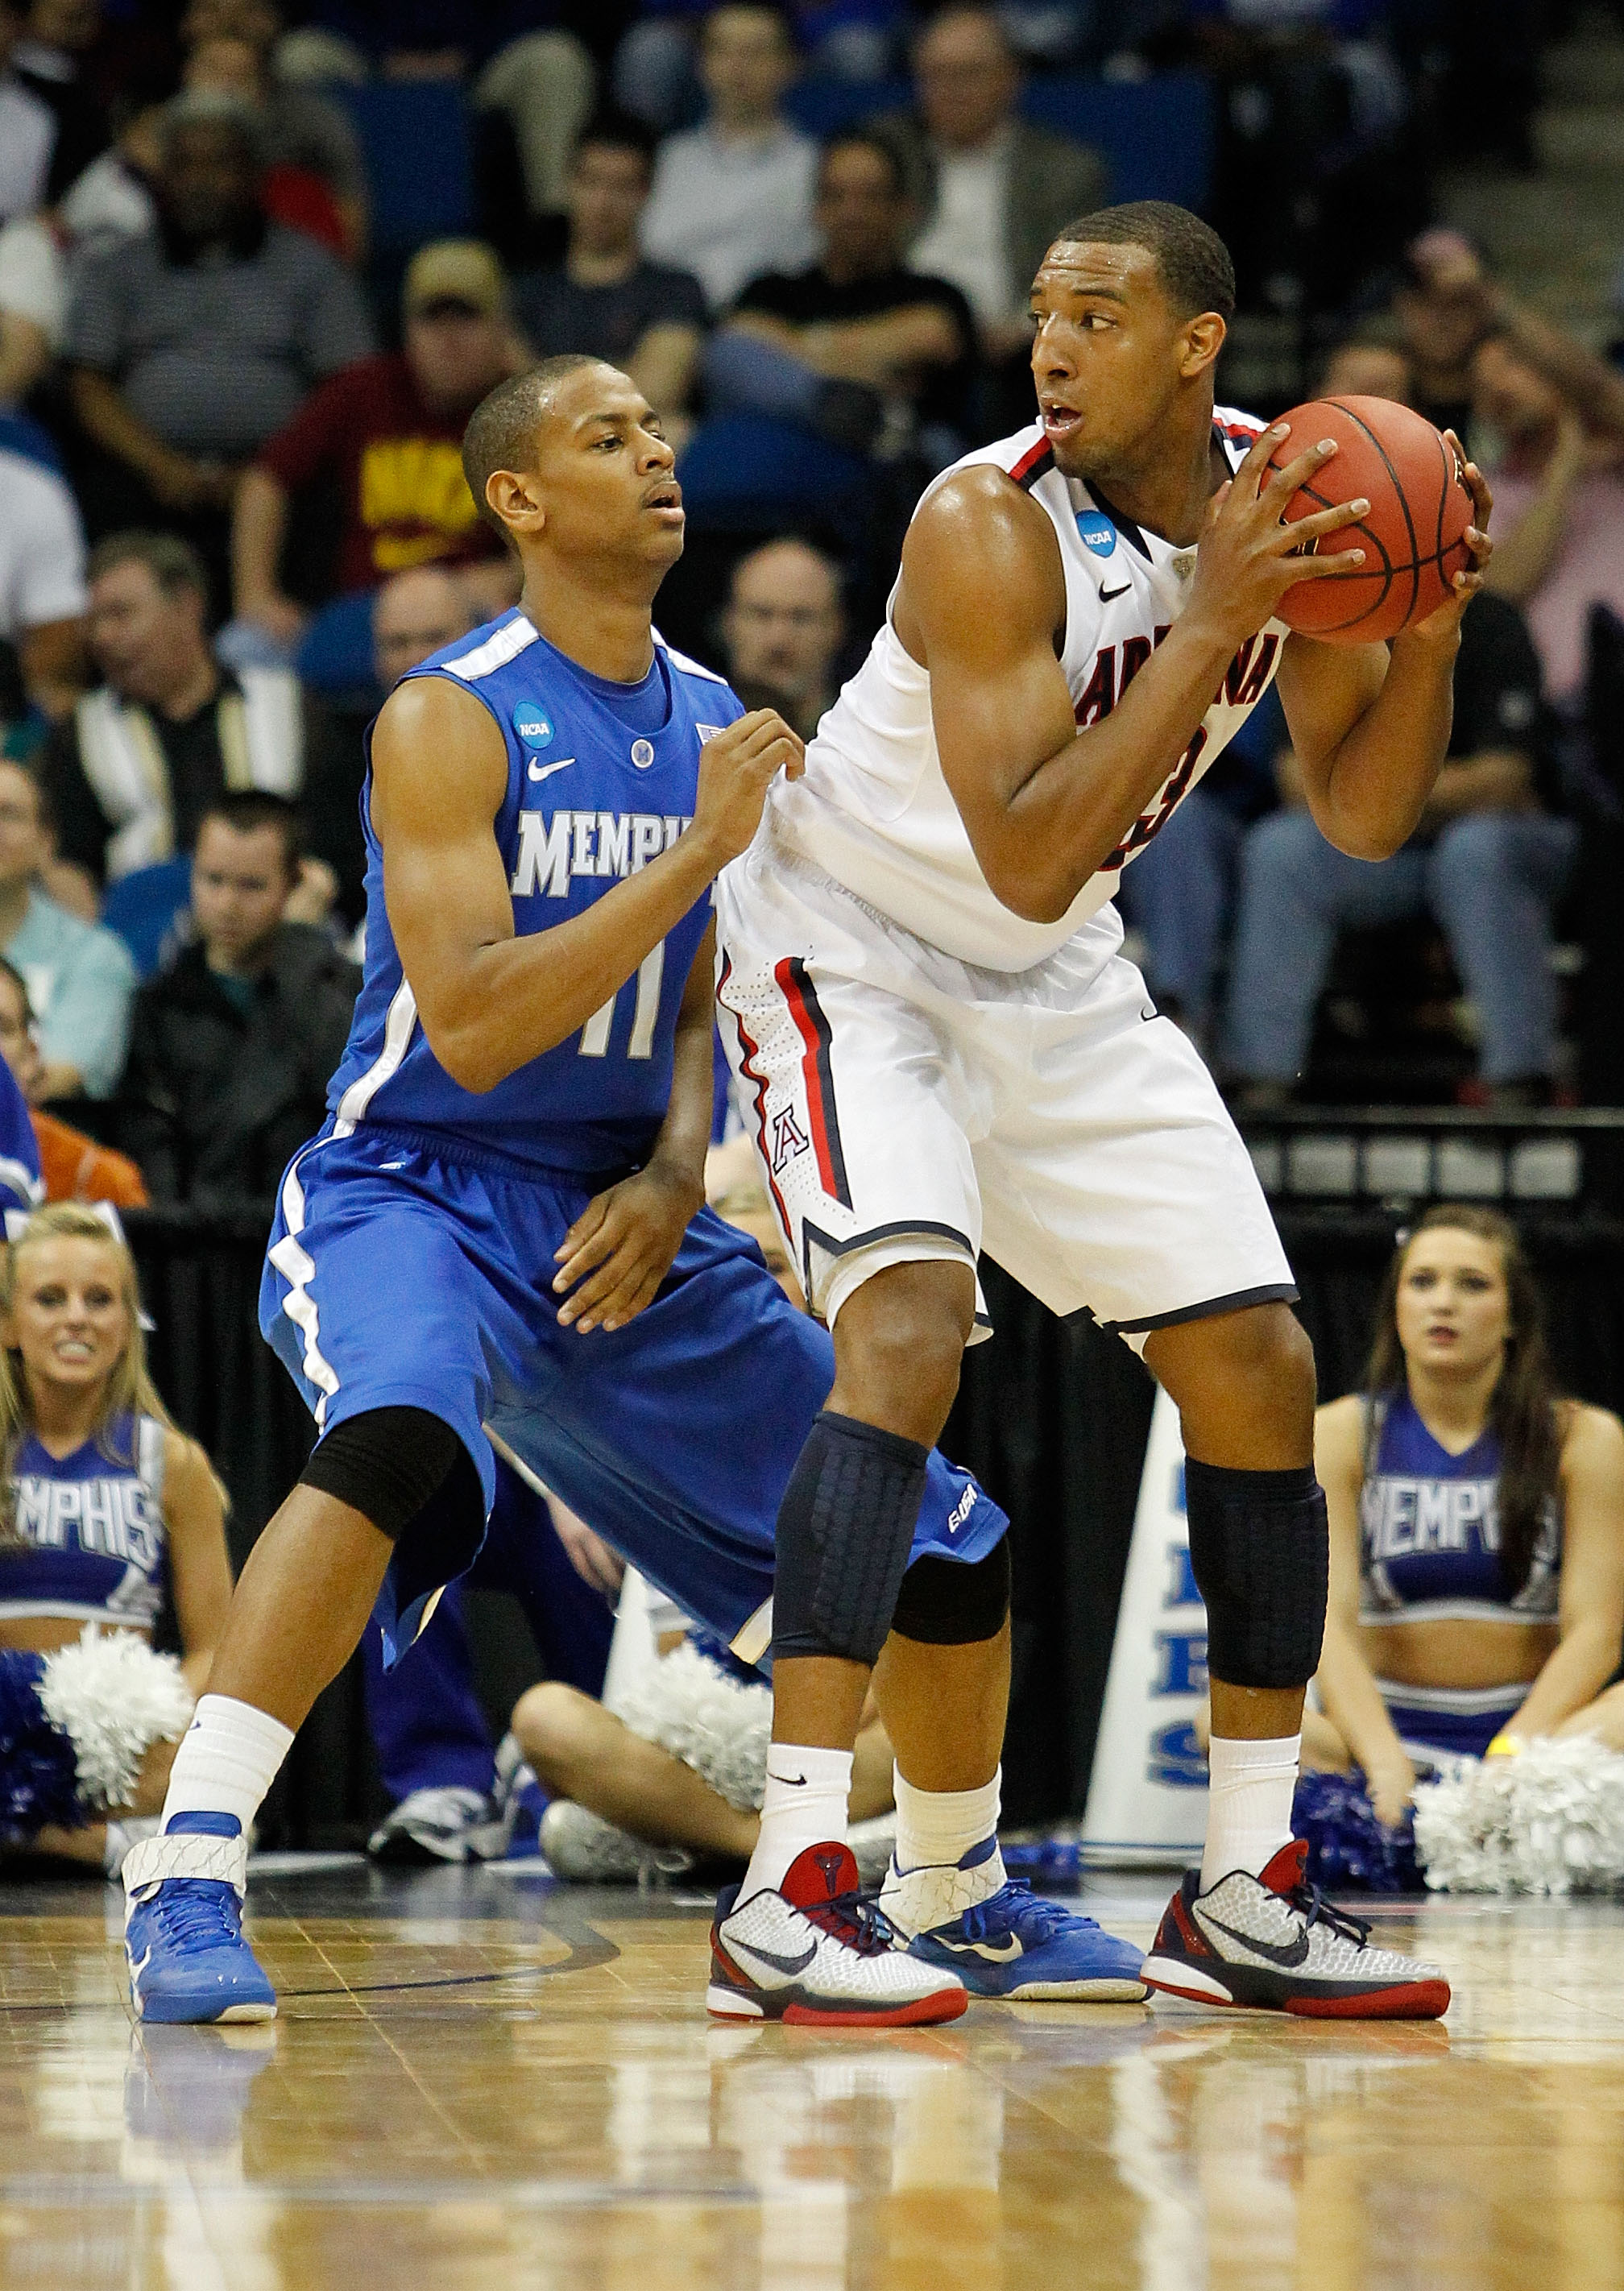 TULSA, OK - MARCH 18:  Derrick Williams #23 of the Arizona Wildcats looks to move the ball as Wesley Witherspoon #11 of the Memphis Tigers defends during the second round game of the 2011 NCAA men's basketball tournament at BOK Center on March 18, 2011 in